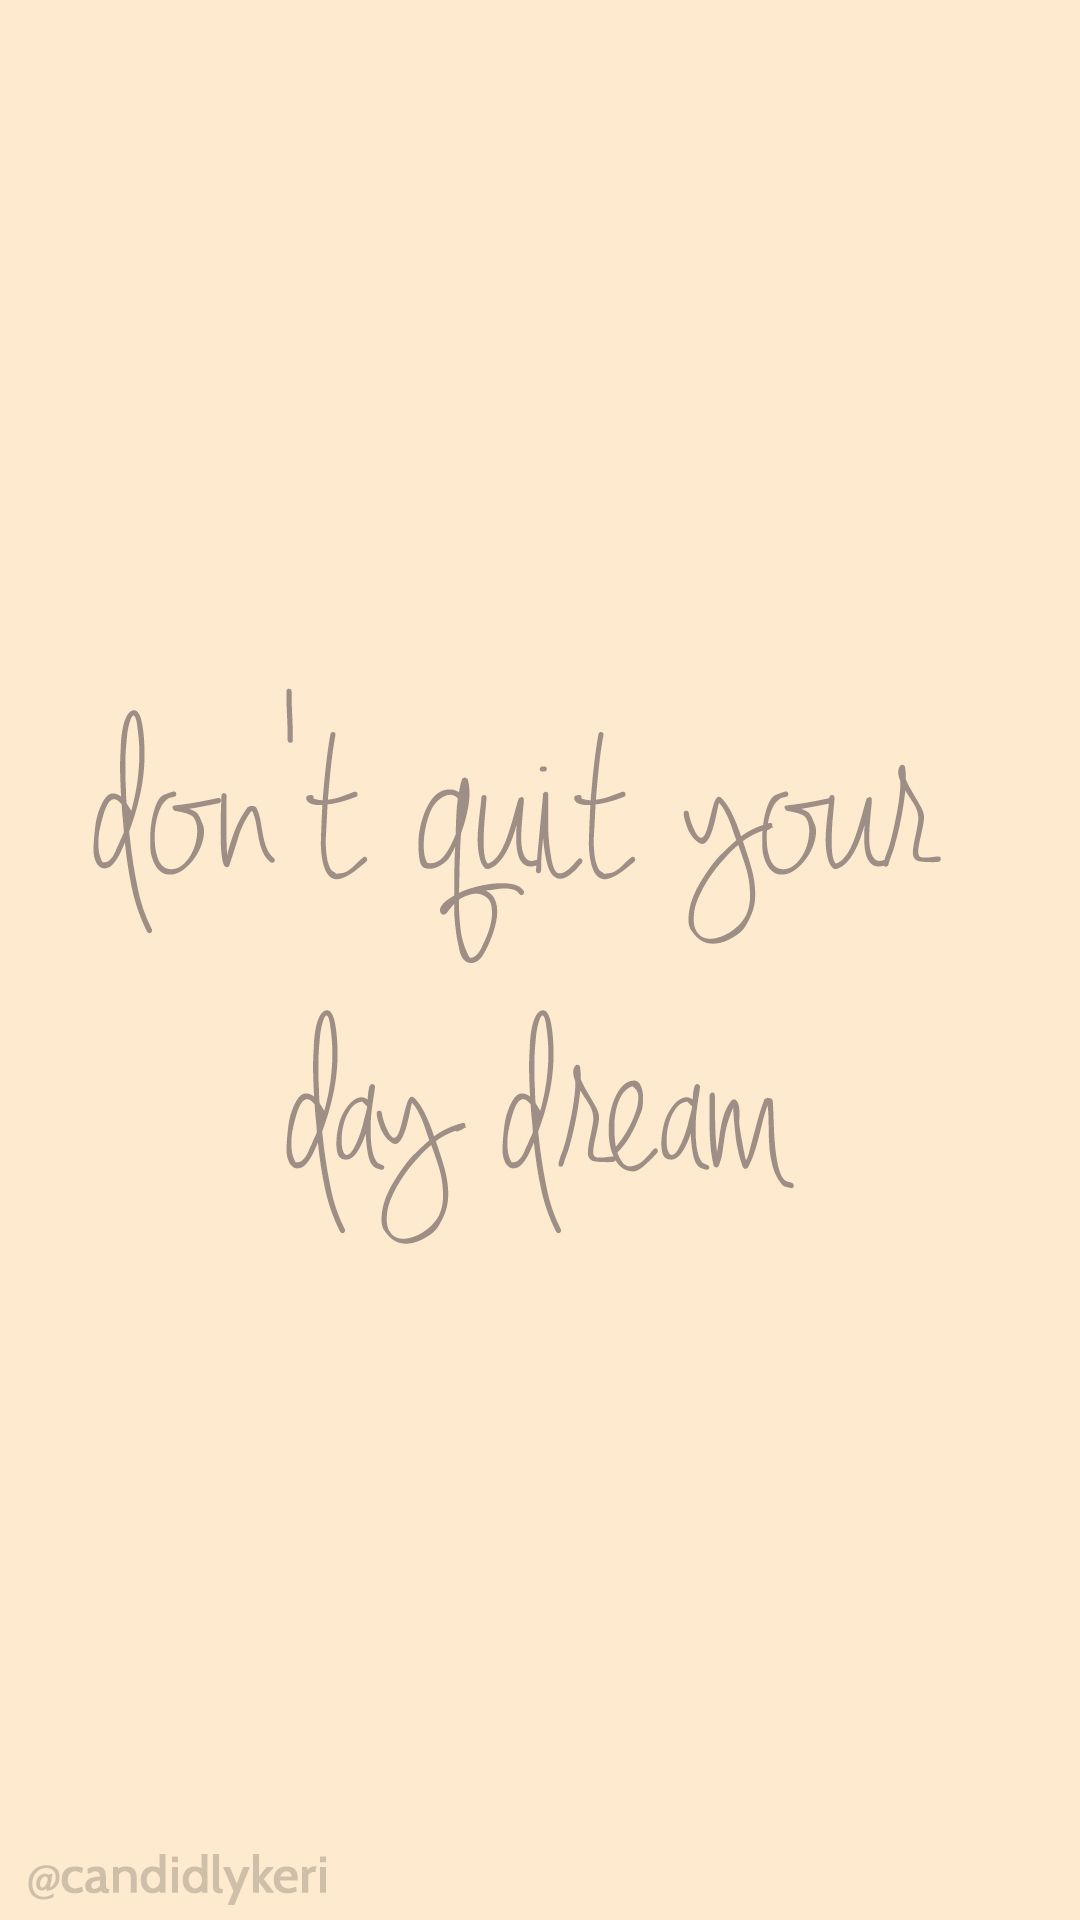 dont quit your day dream wallpaper quote free background for mobile